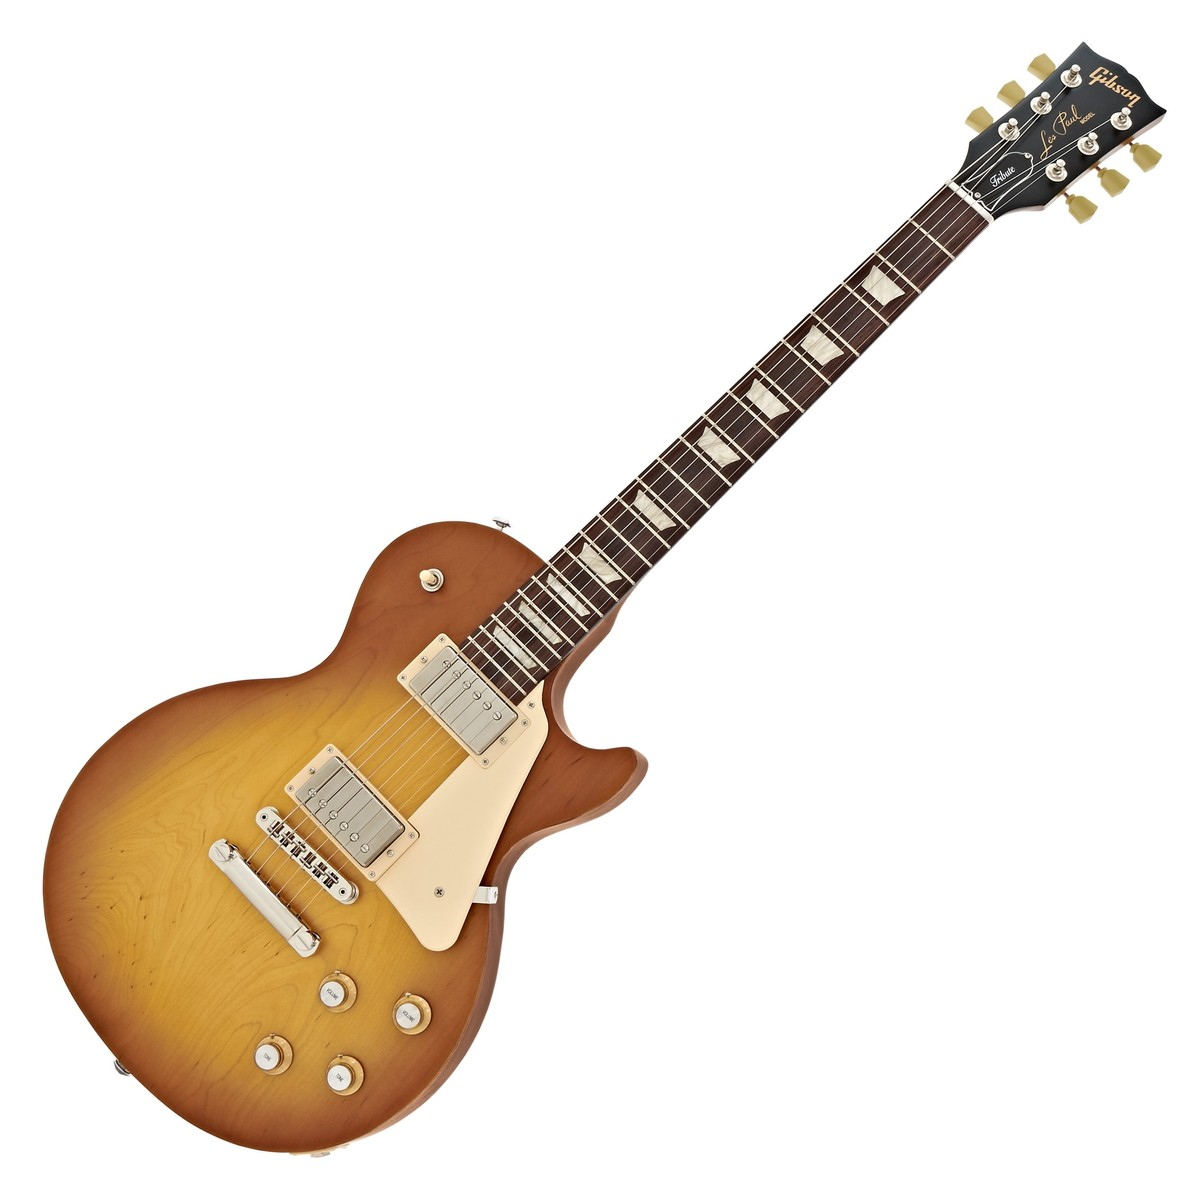 gibson les paul tribute t 2017 faded honey burst at gear4music. Black Bedroom Furniture Sets. Home Design Ideas